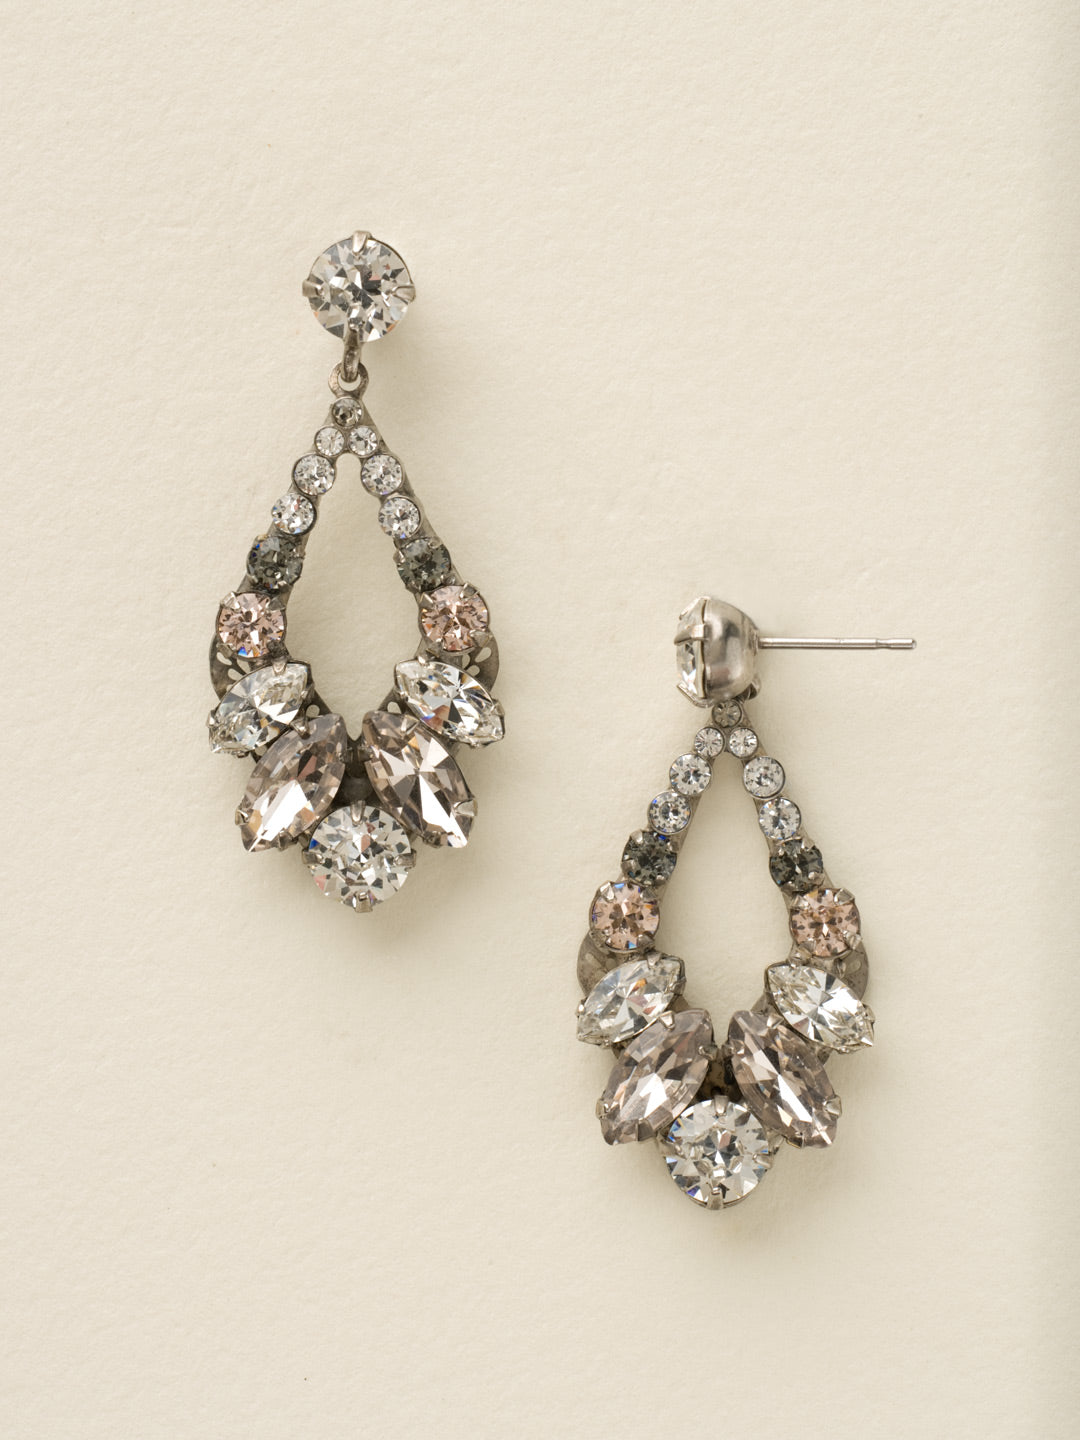 Navette and Round Crystal Adornment Dangle Earrings - EDA53ASSNB